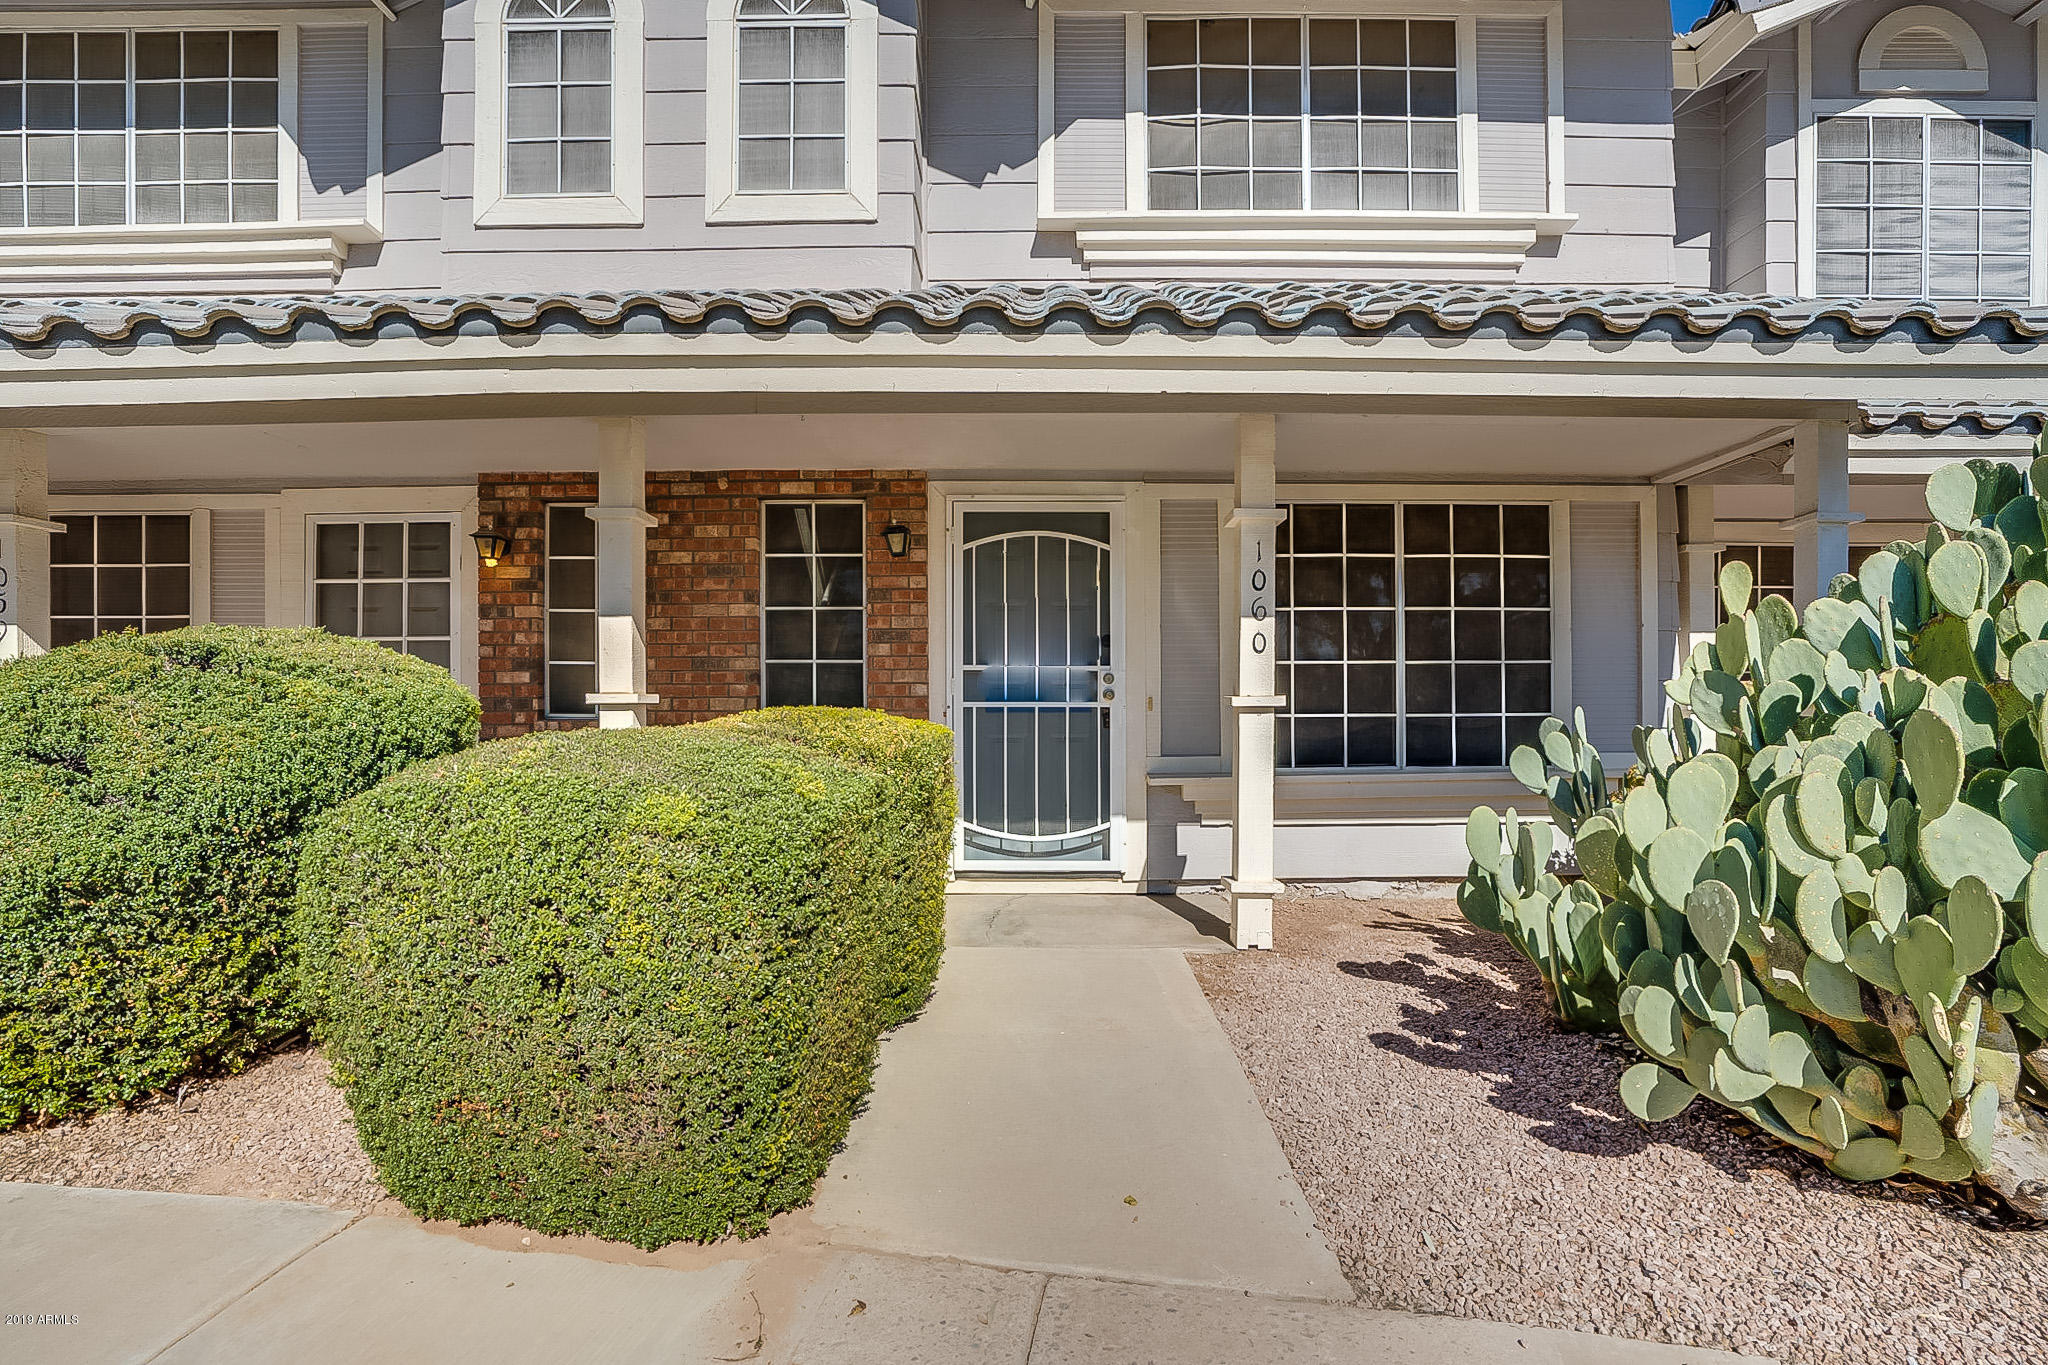 Photo of 860 N MCQUEEN Road #1060, Chandler, AZ 85225